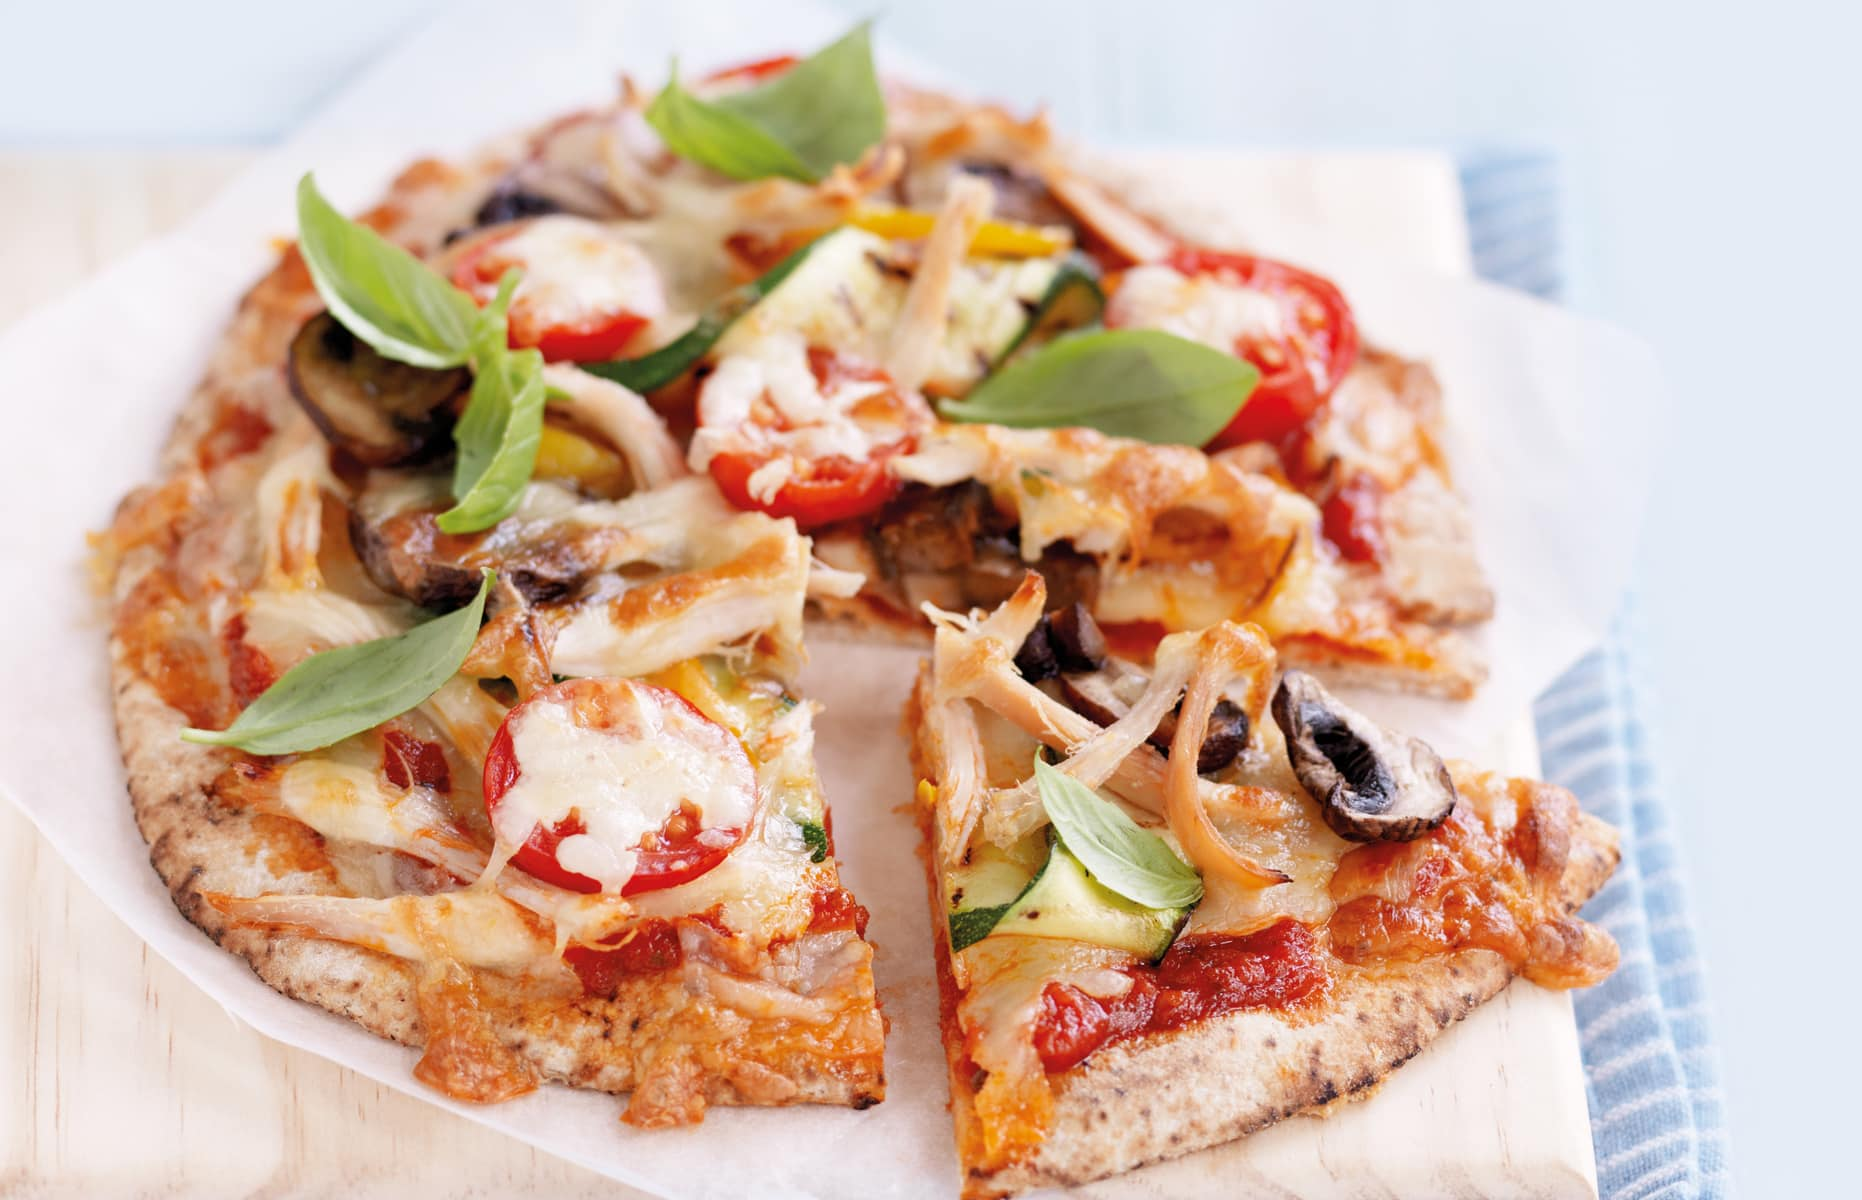 Pita Bread Pizza With Chicken And Grilled Veges Healthy Food Guide